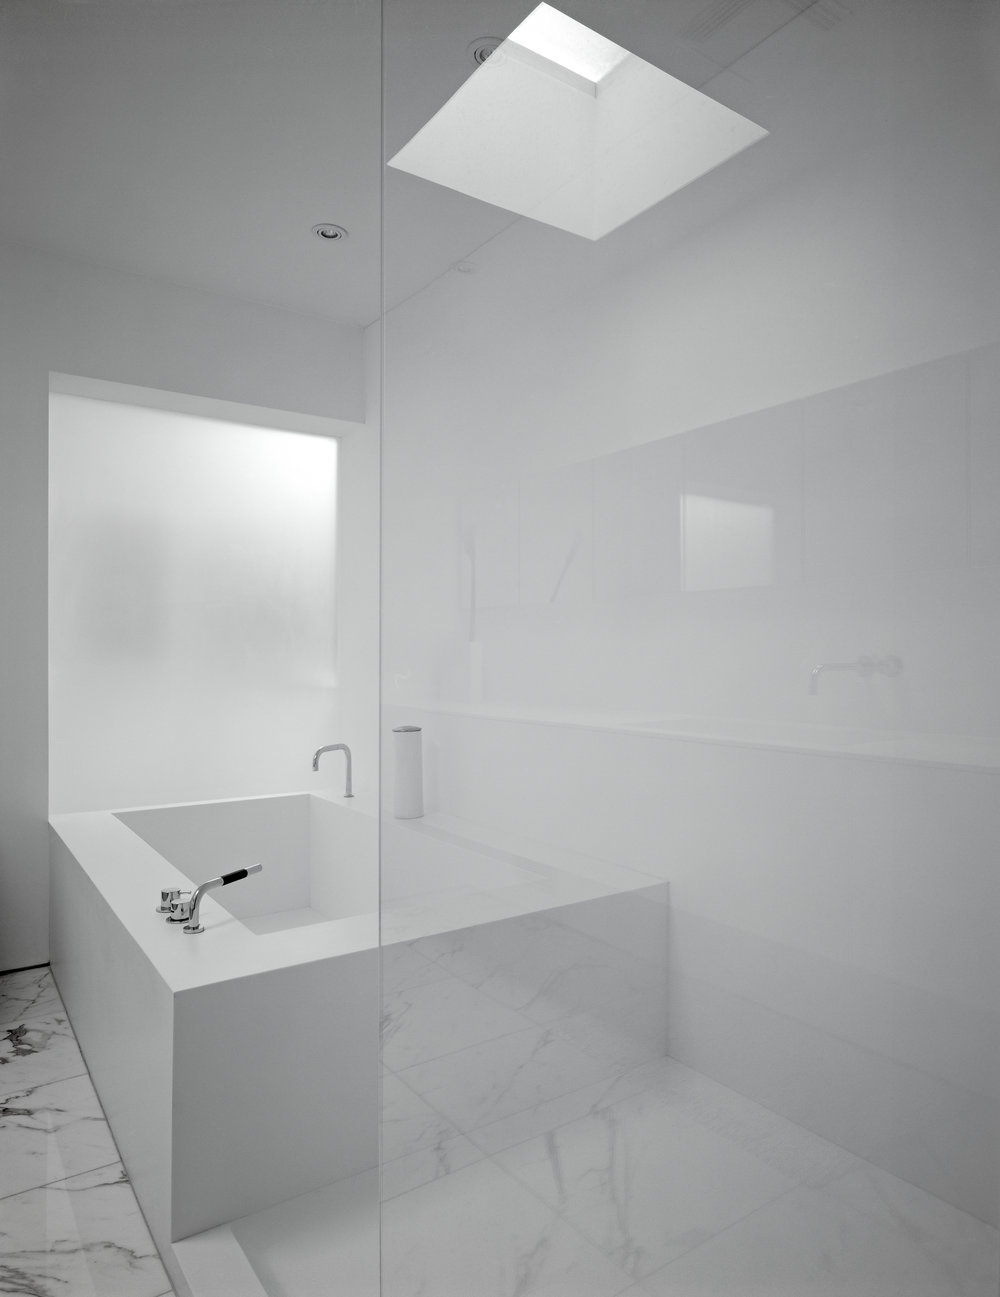 Copy of Russell Hill Road - Washroom Bathroom Shower Glass Bathtub Fauce